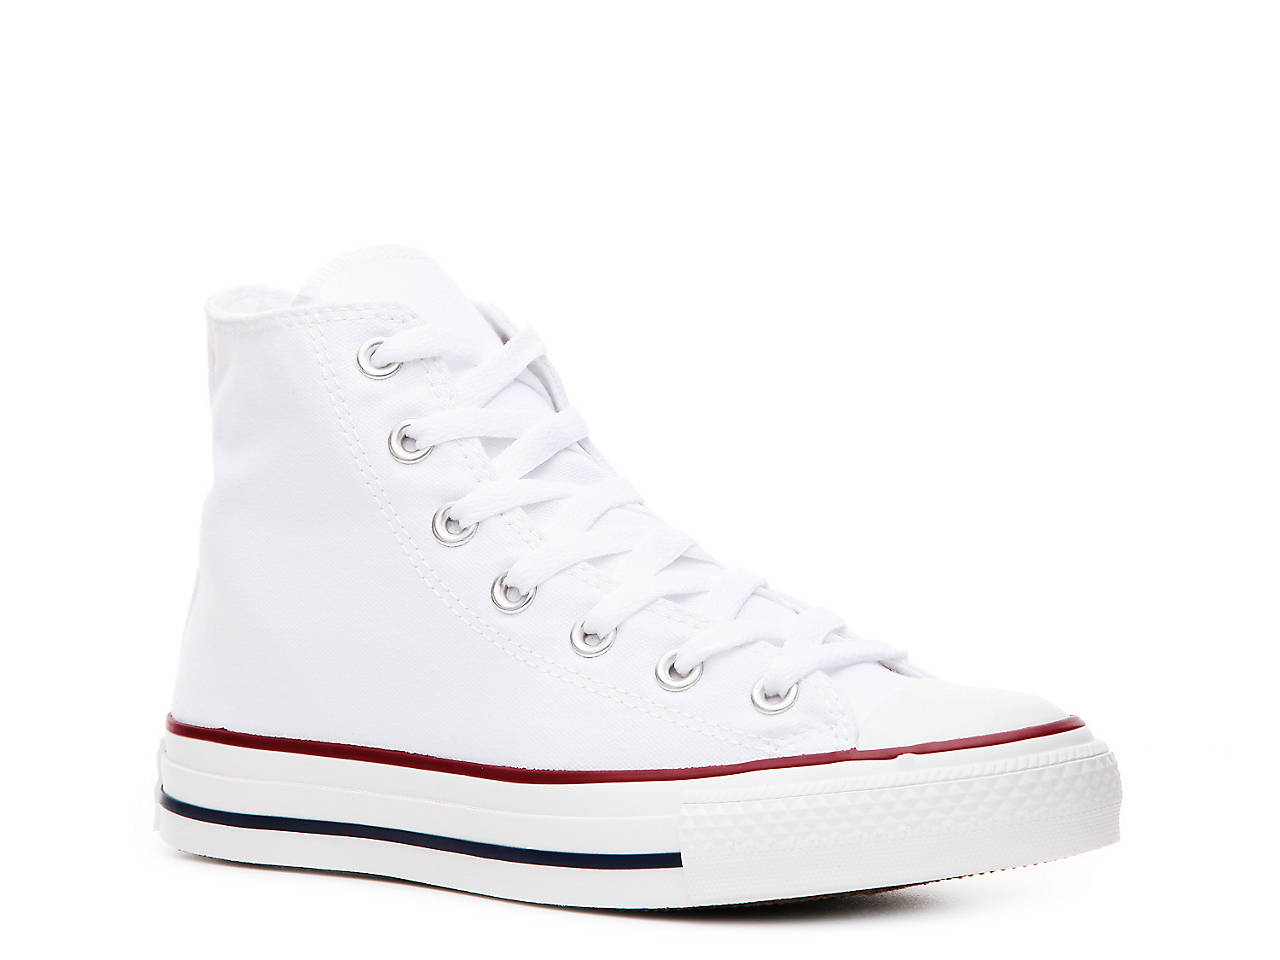 e3121f49310966 Converse Chuck Taylor All Star High-Top Sneaker - Women s Women s ...